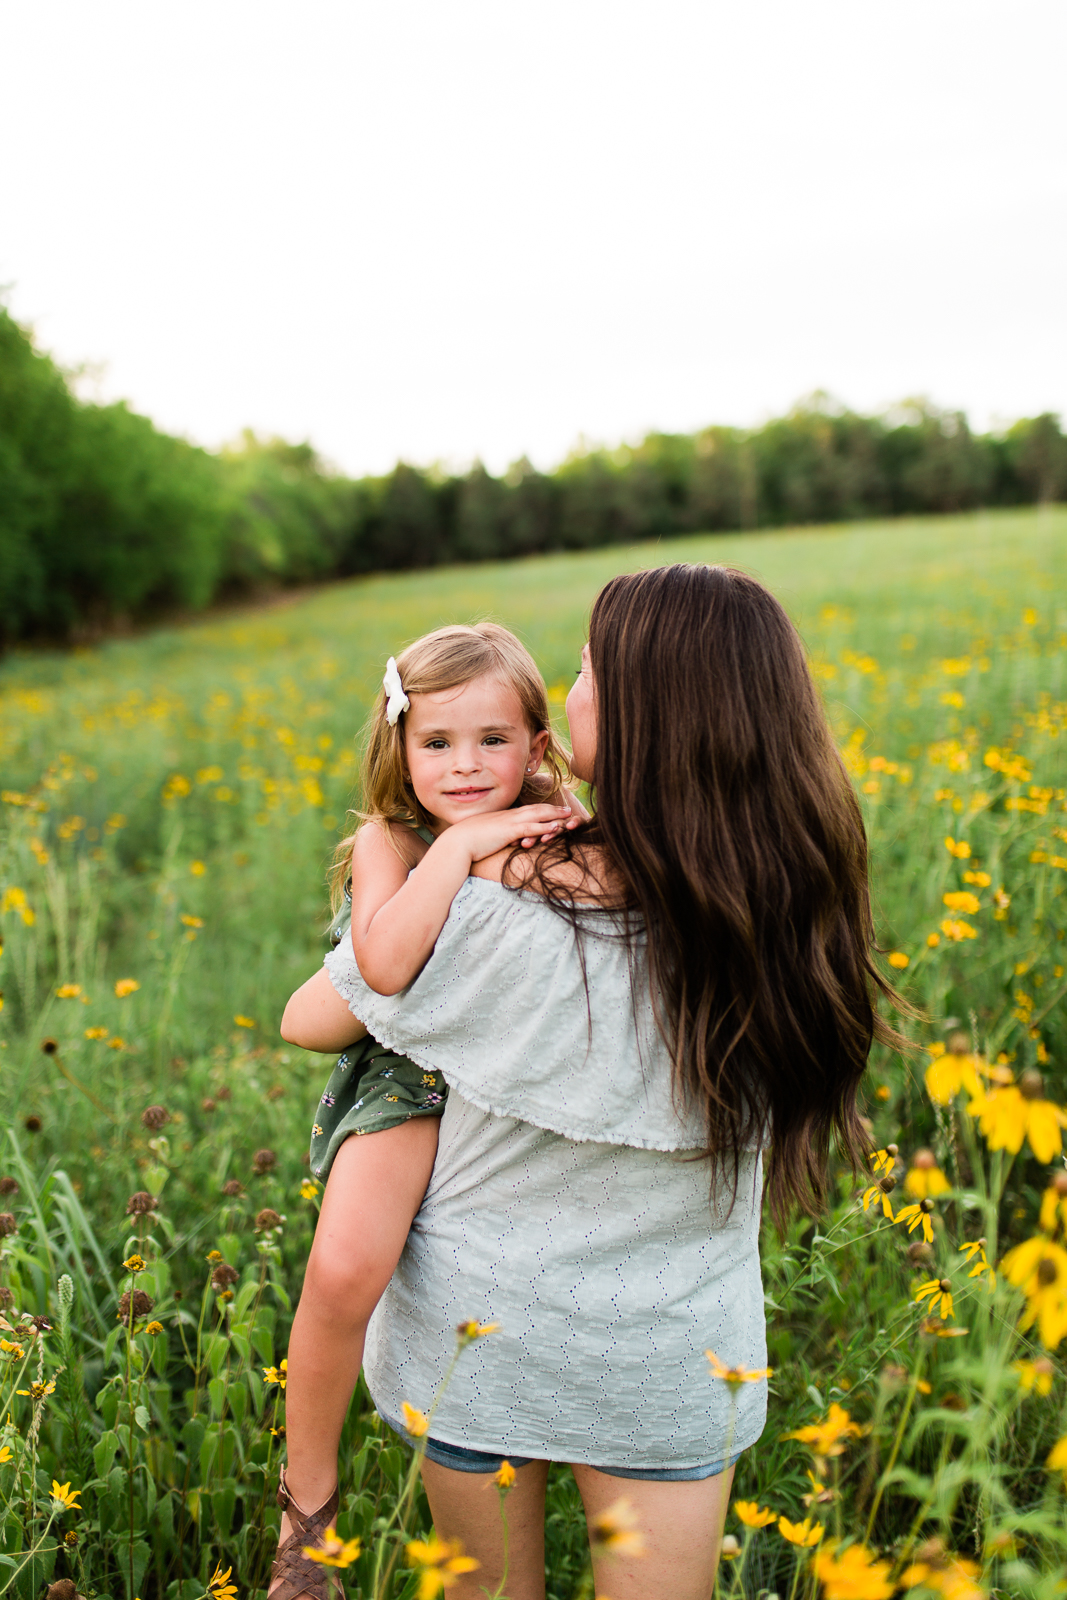 Mother carries daughter into a field of flowers, mommy and me session at Shawnee Mission Park, Kansas City family photographer